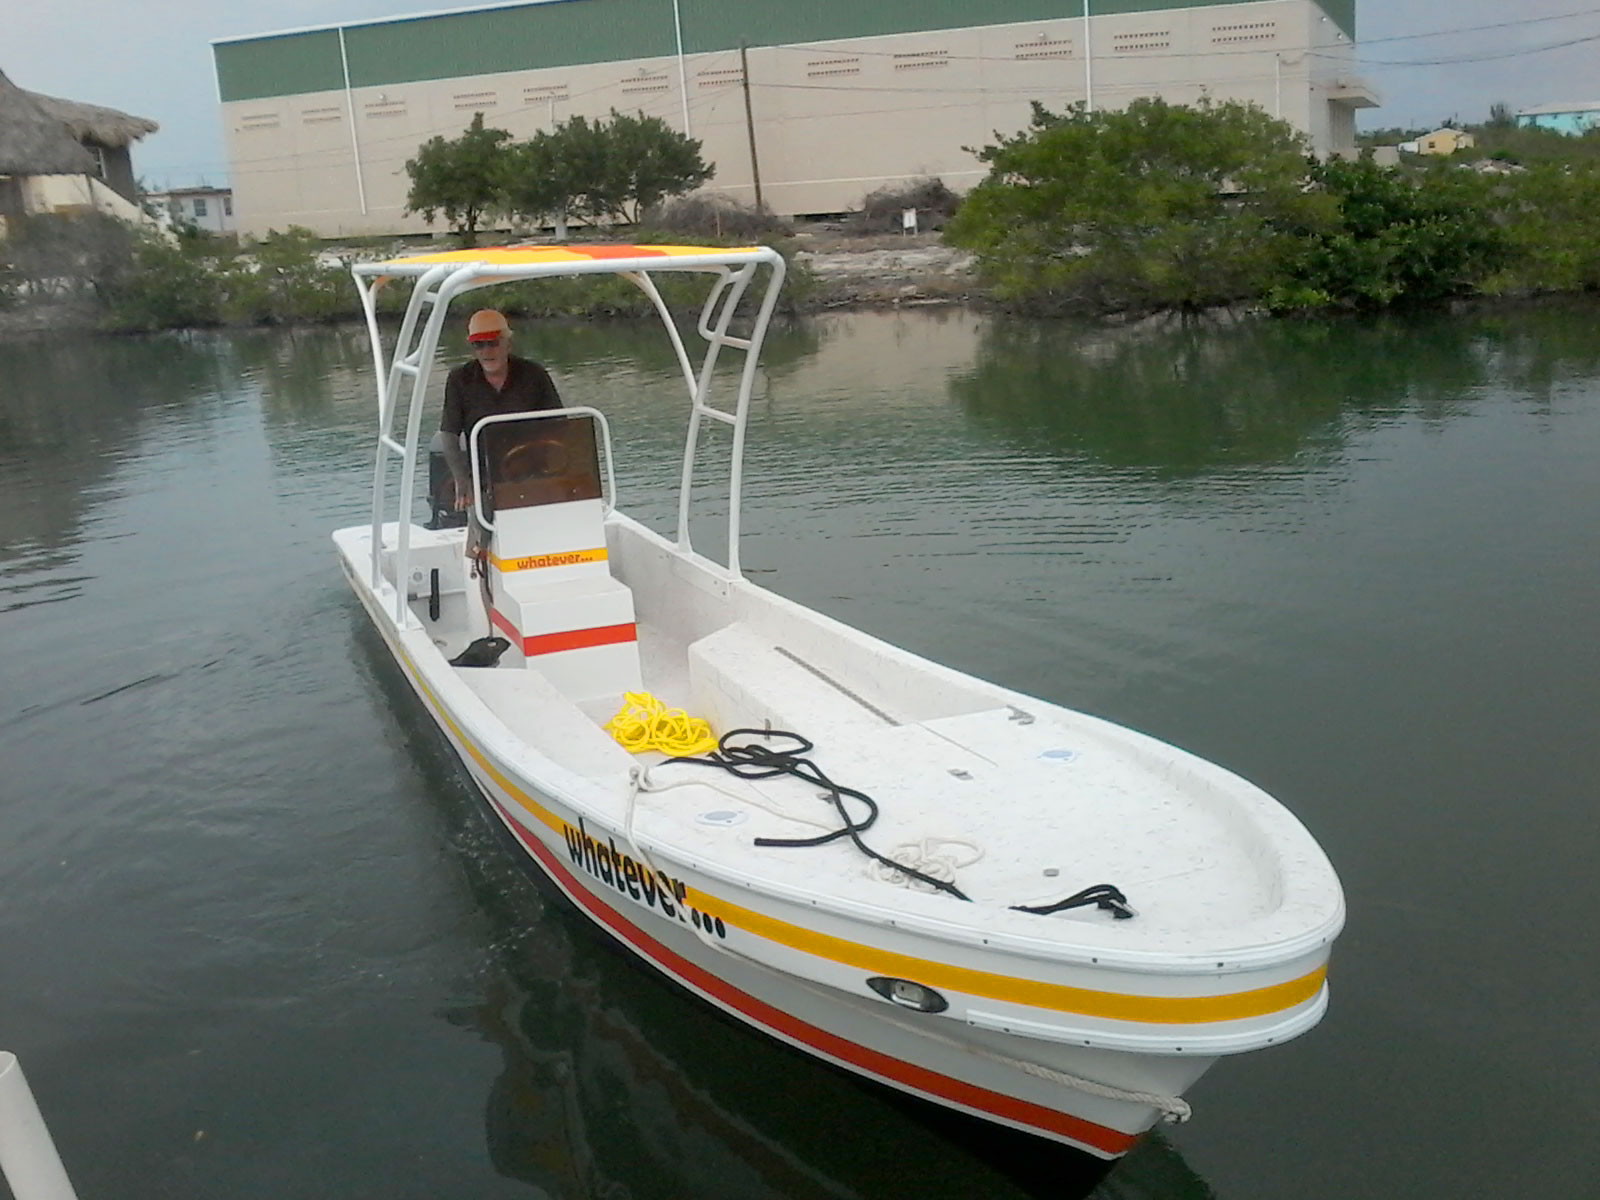 David Bakr Refurbished Boat and Custom T-top by Captain Sharks